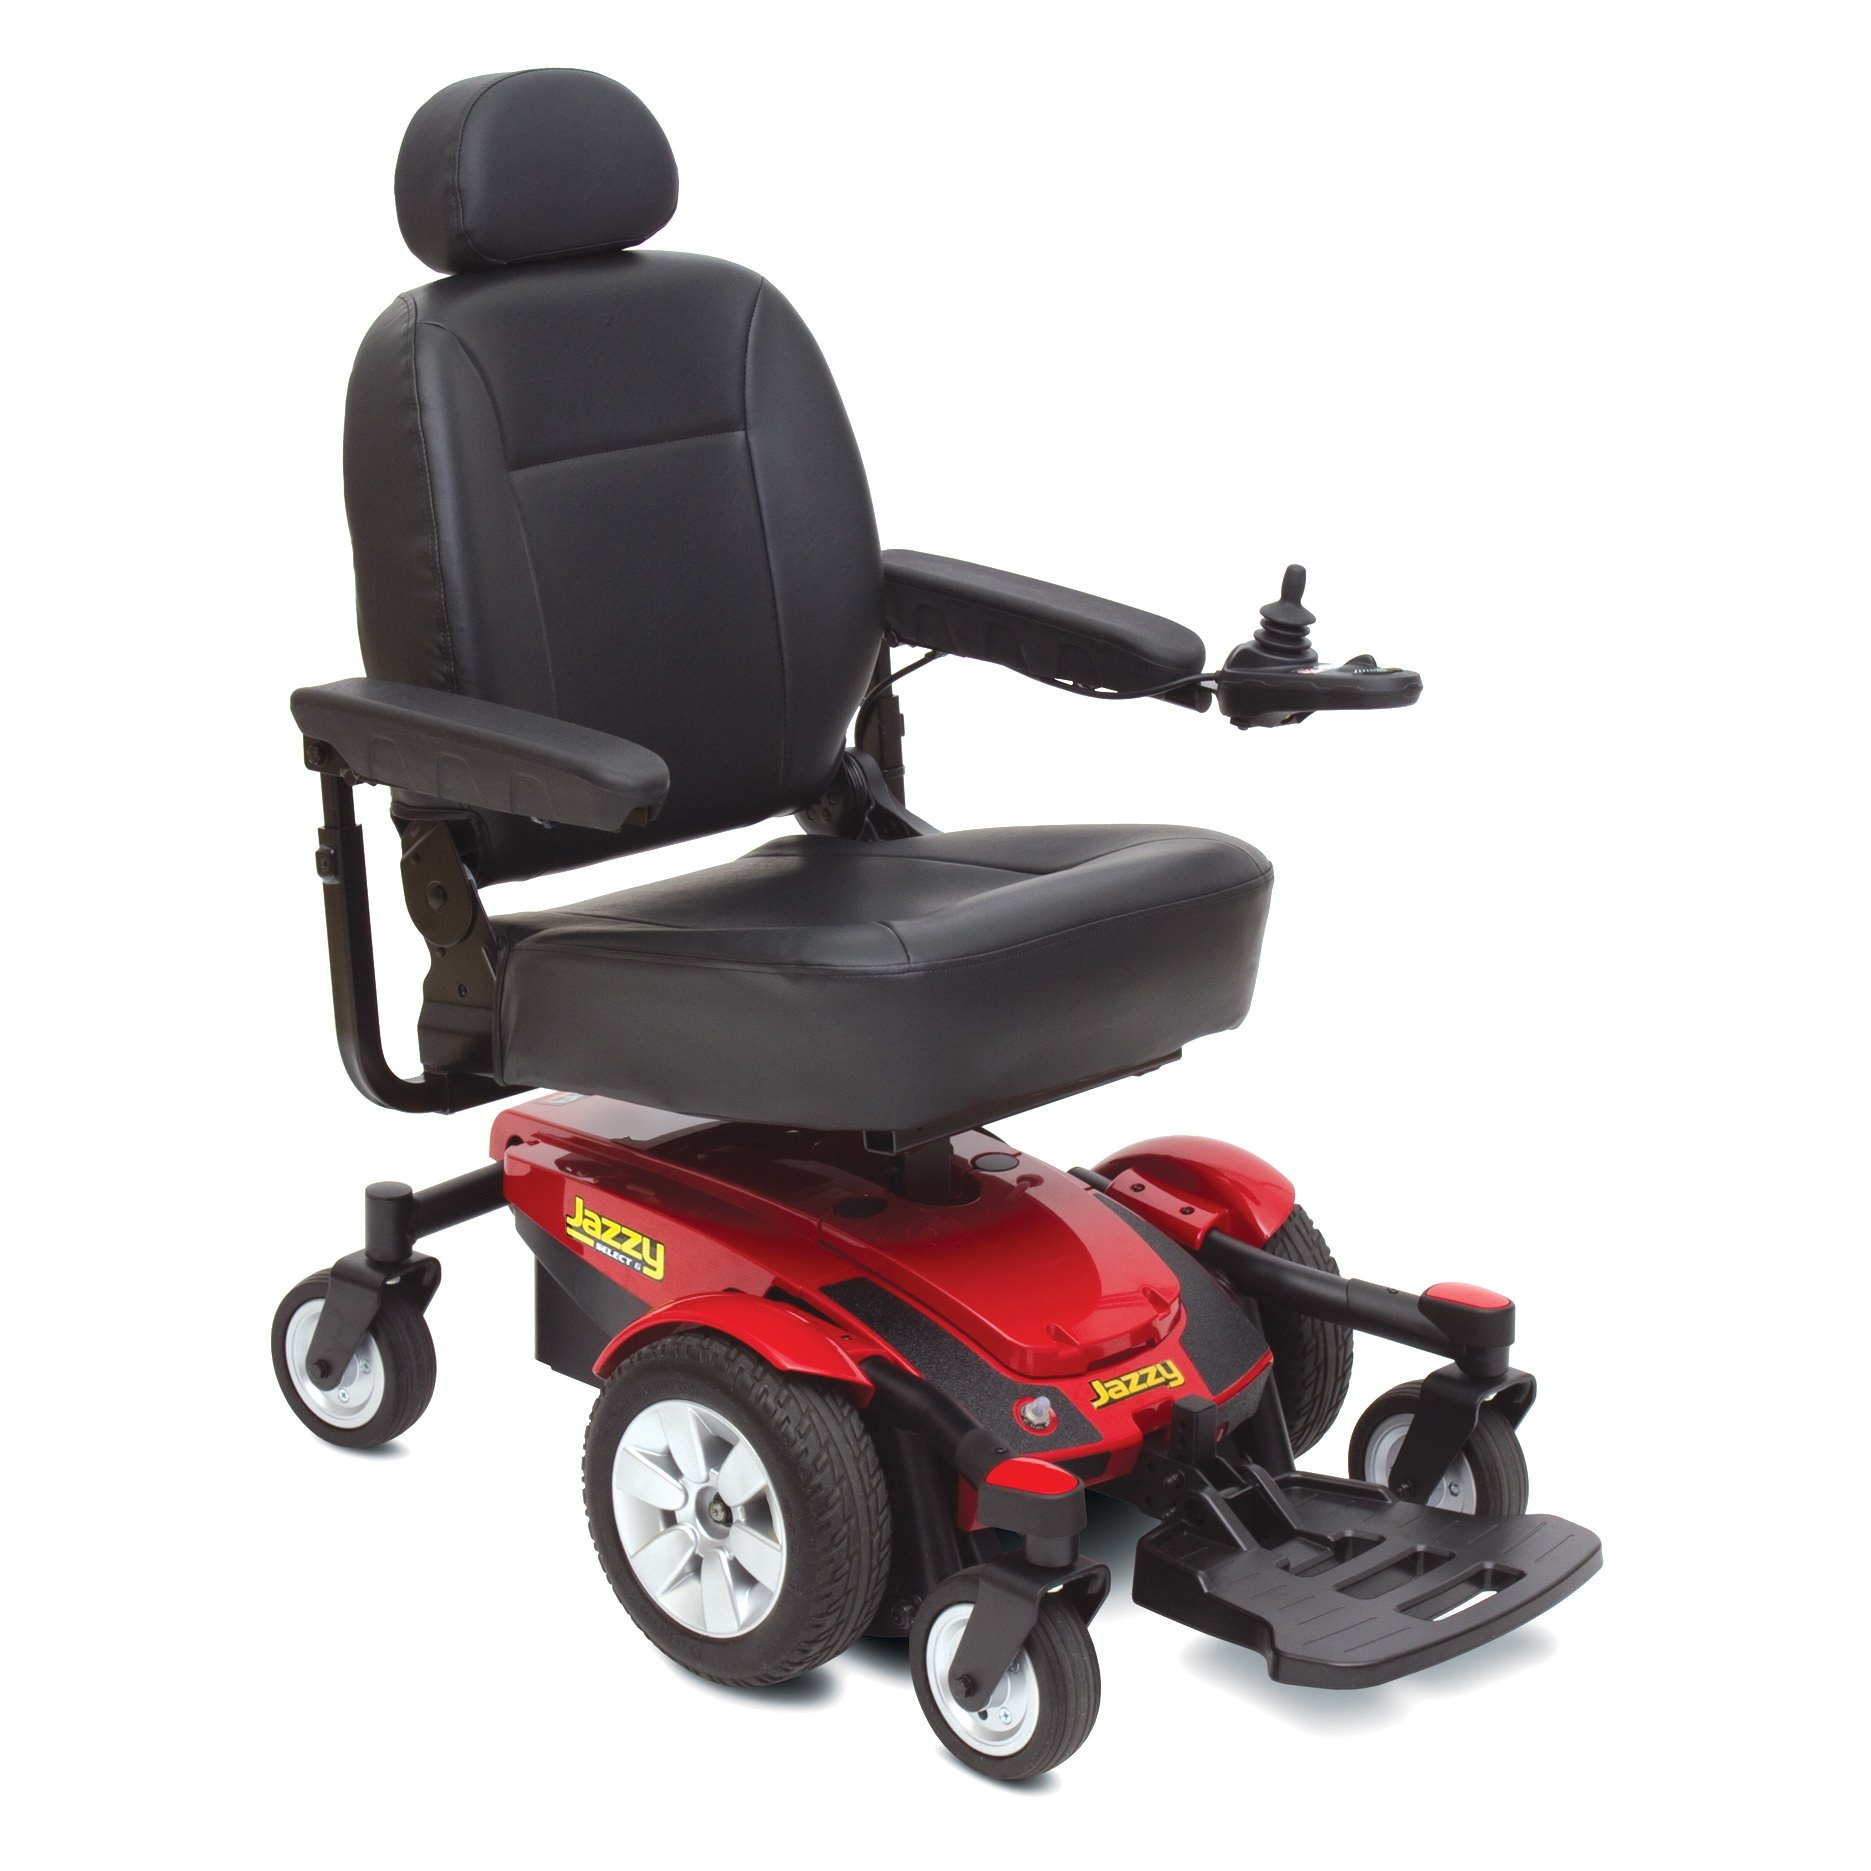 Power Chair Repair Medical Equipment And Supplies Los Angeles Wheelchairs